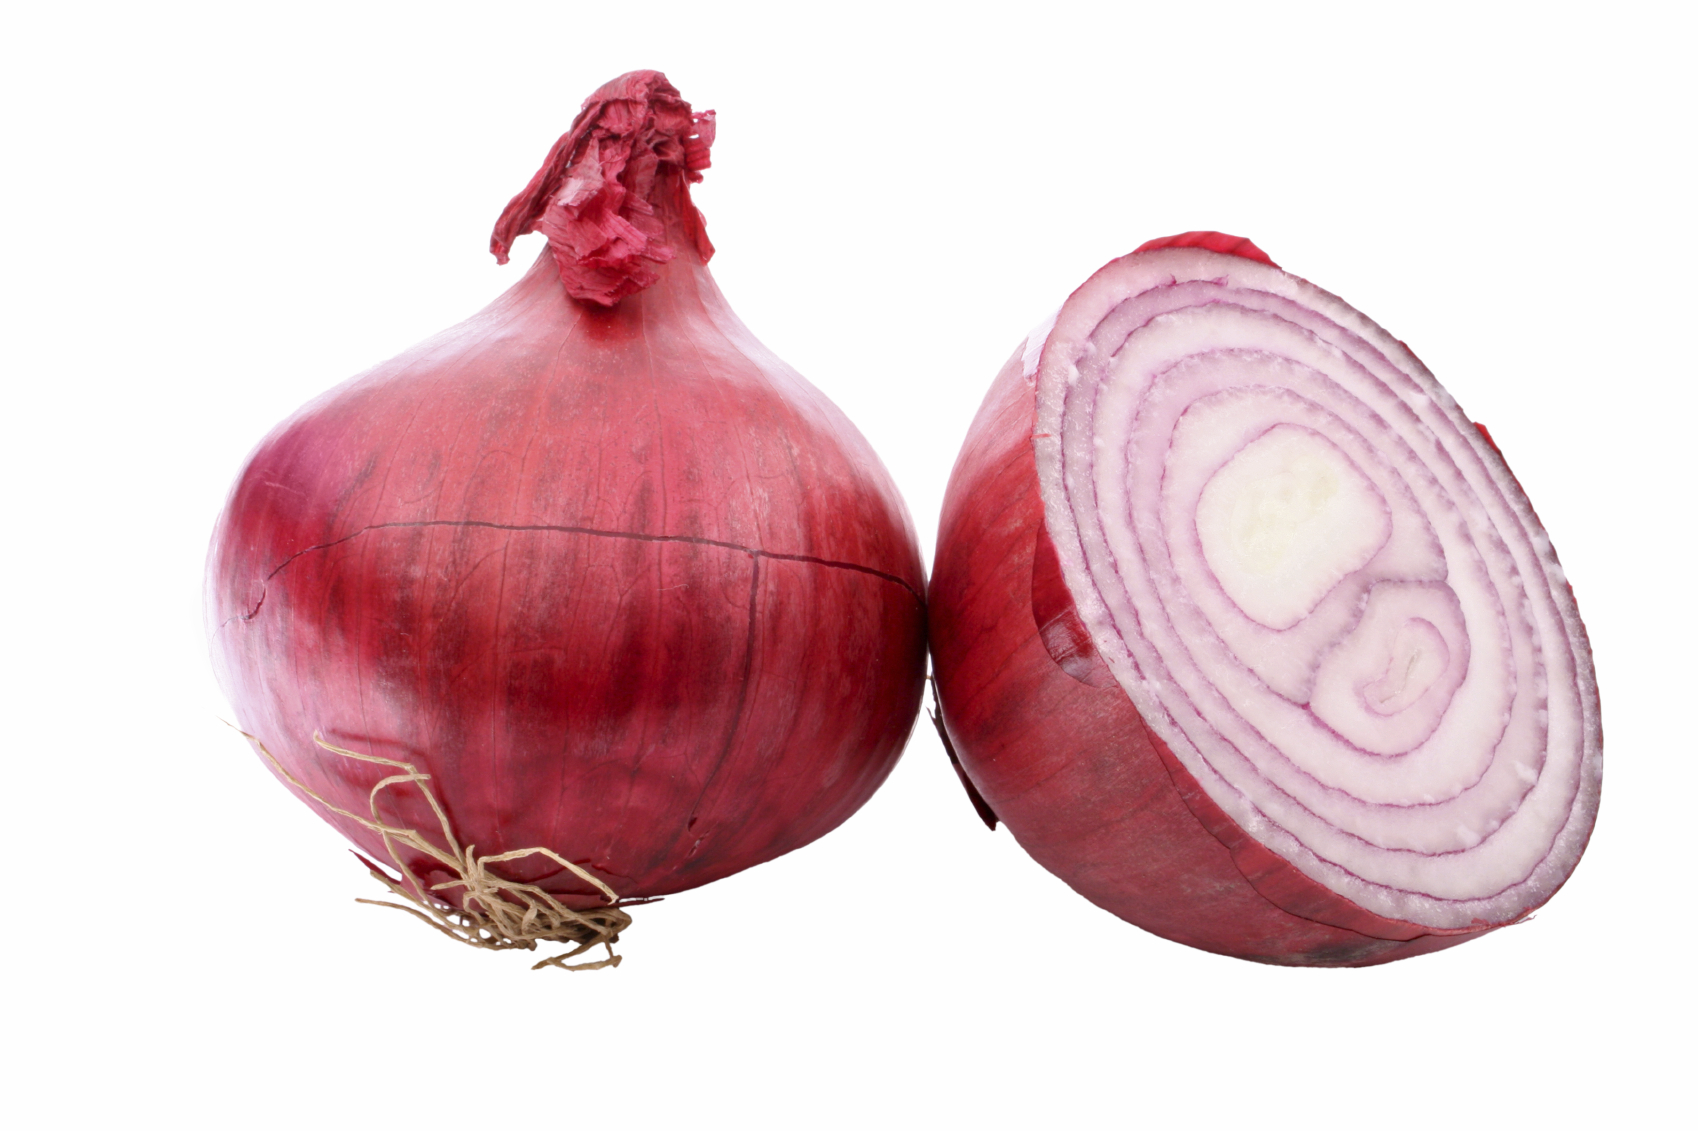 Apparently, Here's What Happens When You Put A Piece Of Onion In Your Ear